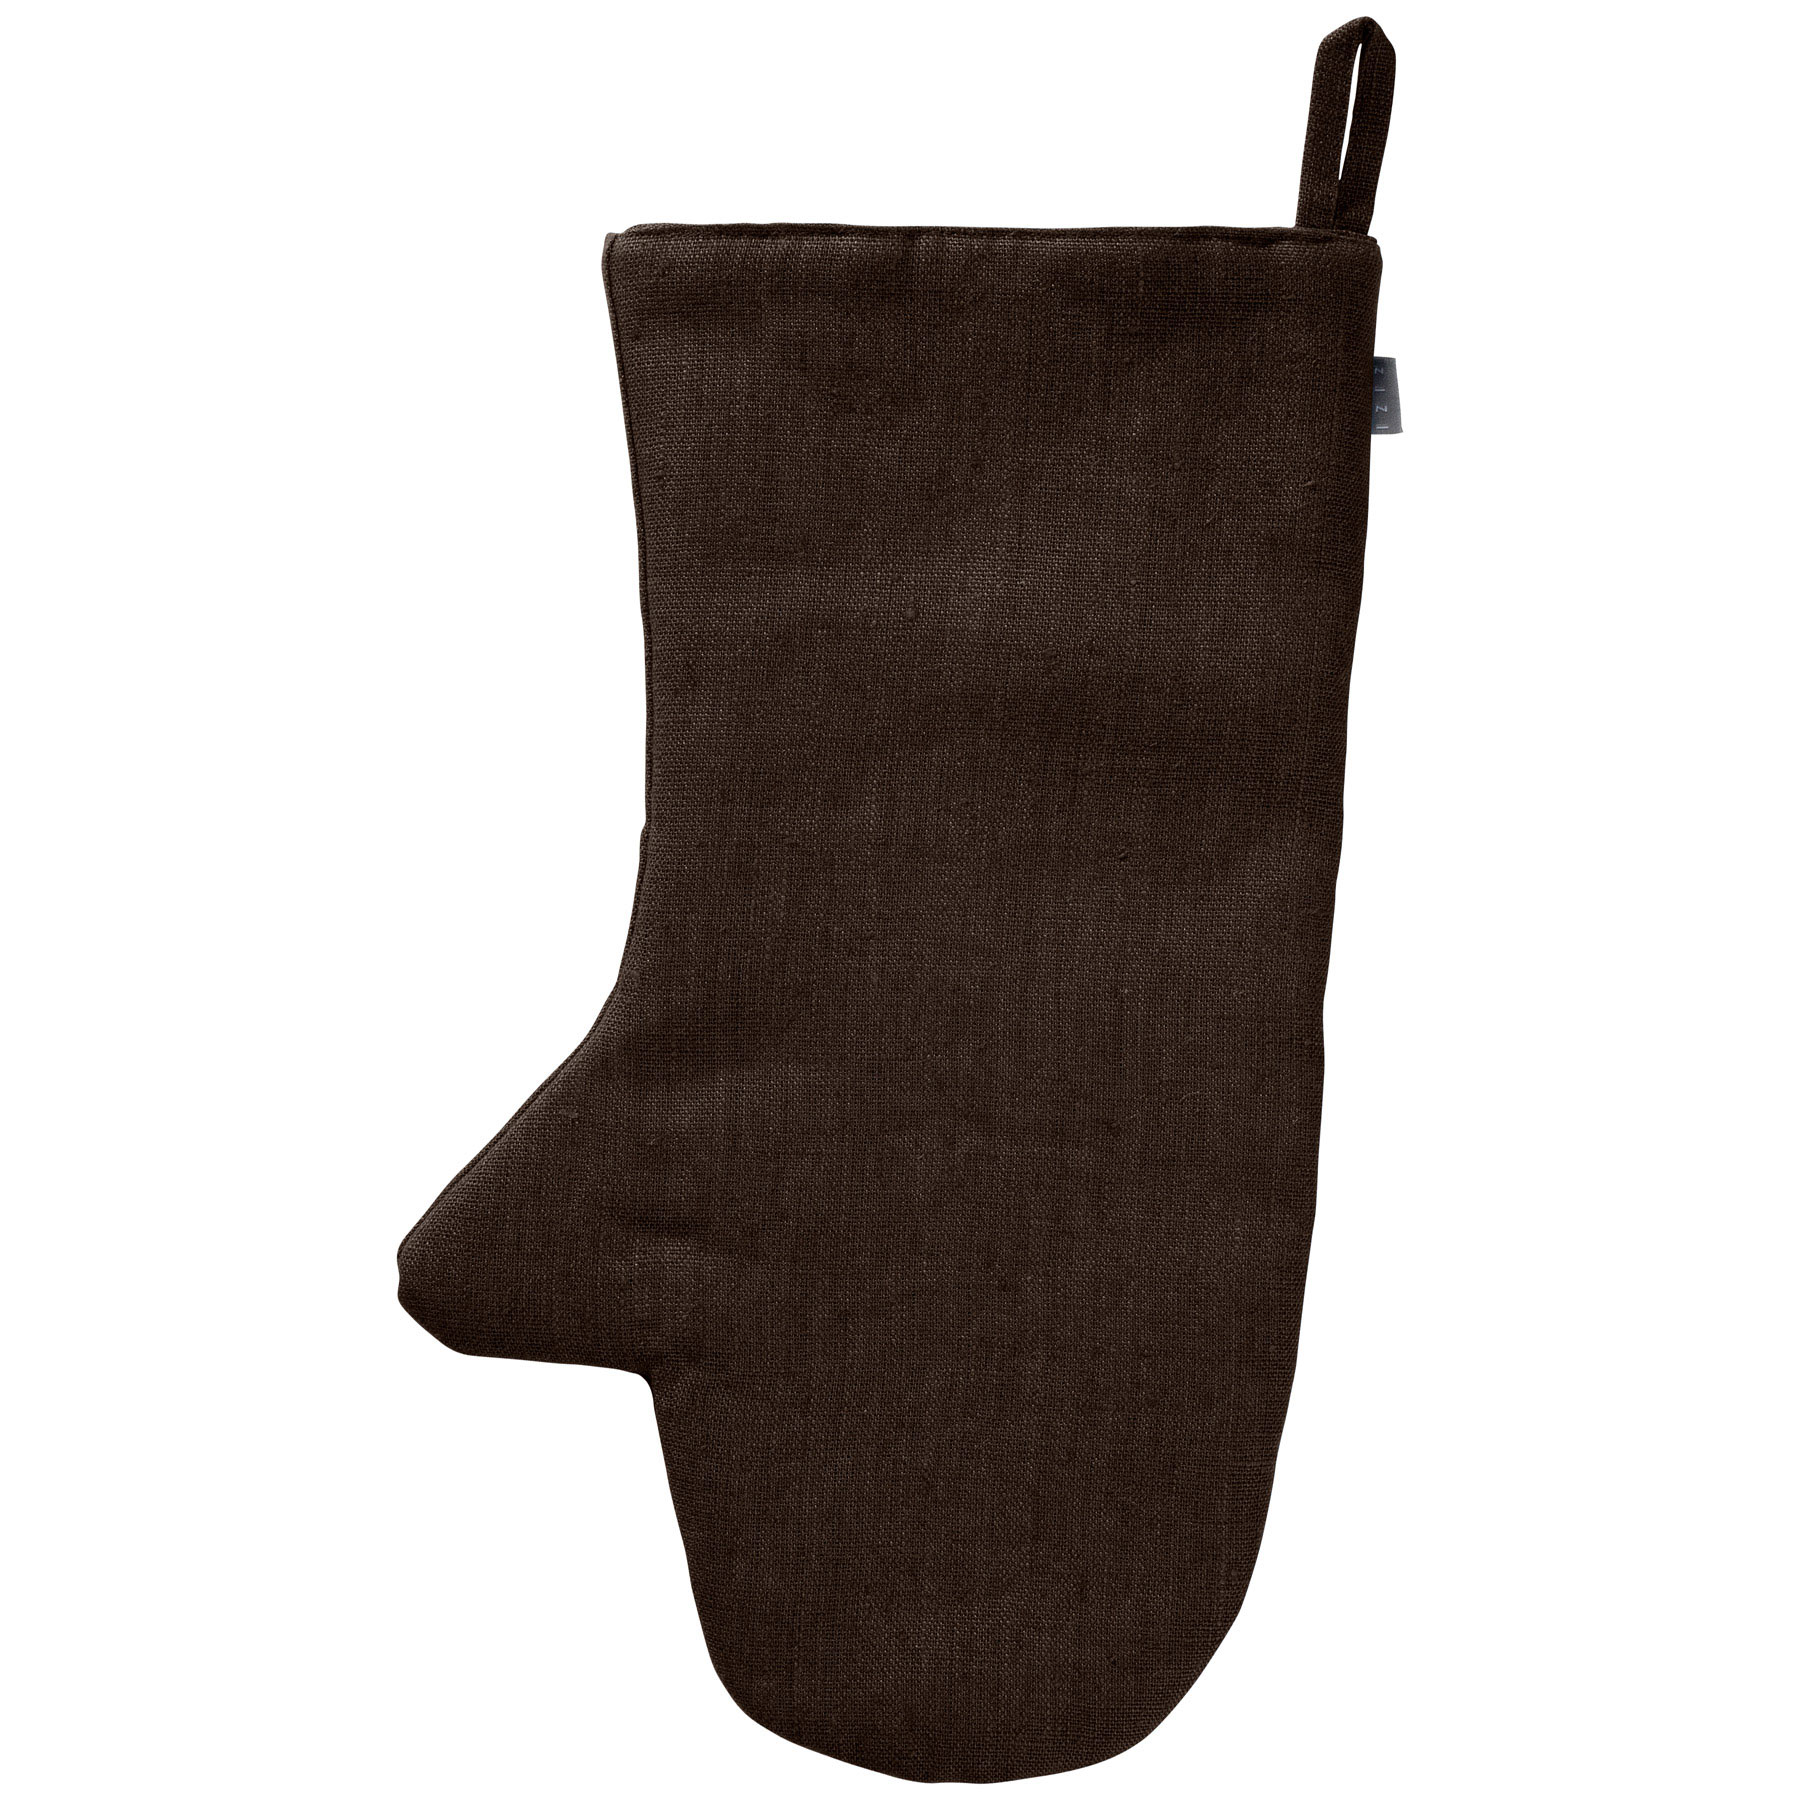 OVEN MITT <br />chocolate brown